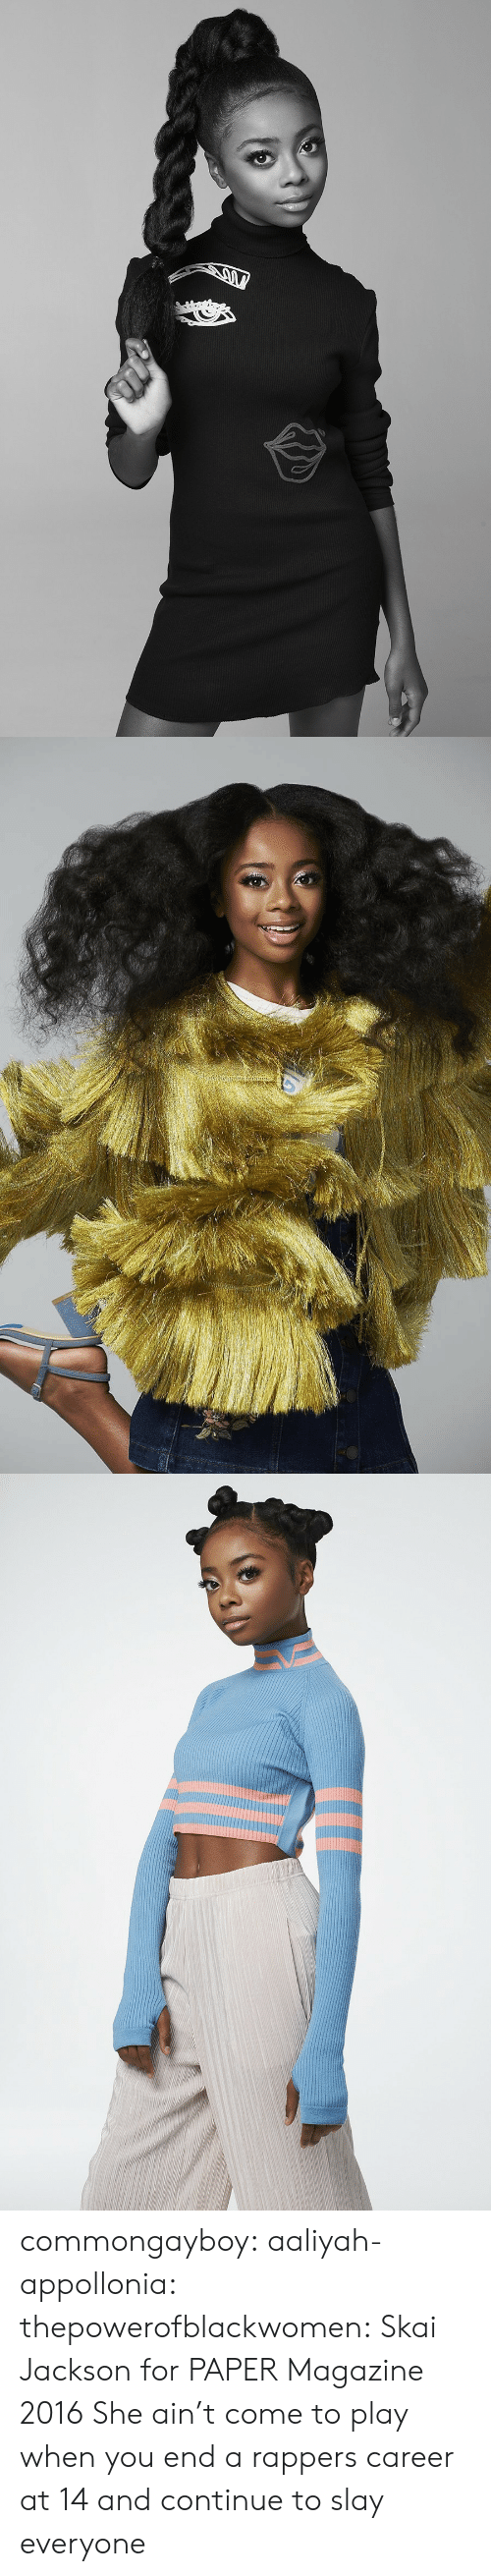 Target, Tumblr, and Aaliyah: commongayboy:  aaliyah-appollonia:  thepowerofblackwomen:  Skai Jackson for PAPER Magazine 2016  She ain't come to play   when you end a rappers career at 14 and continue to slay everyone